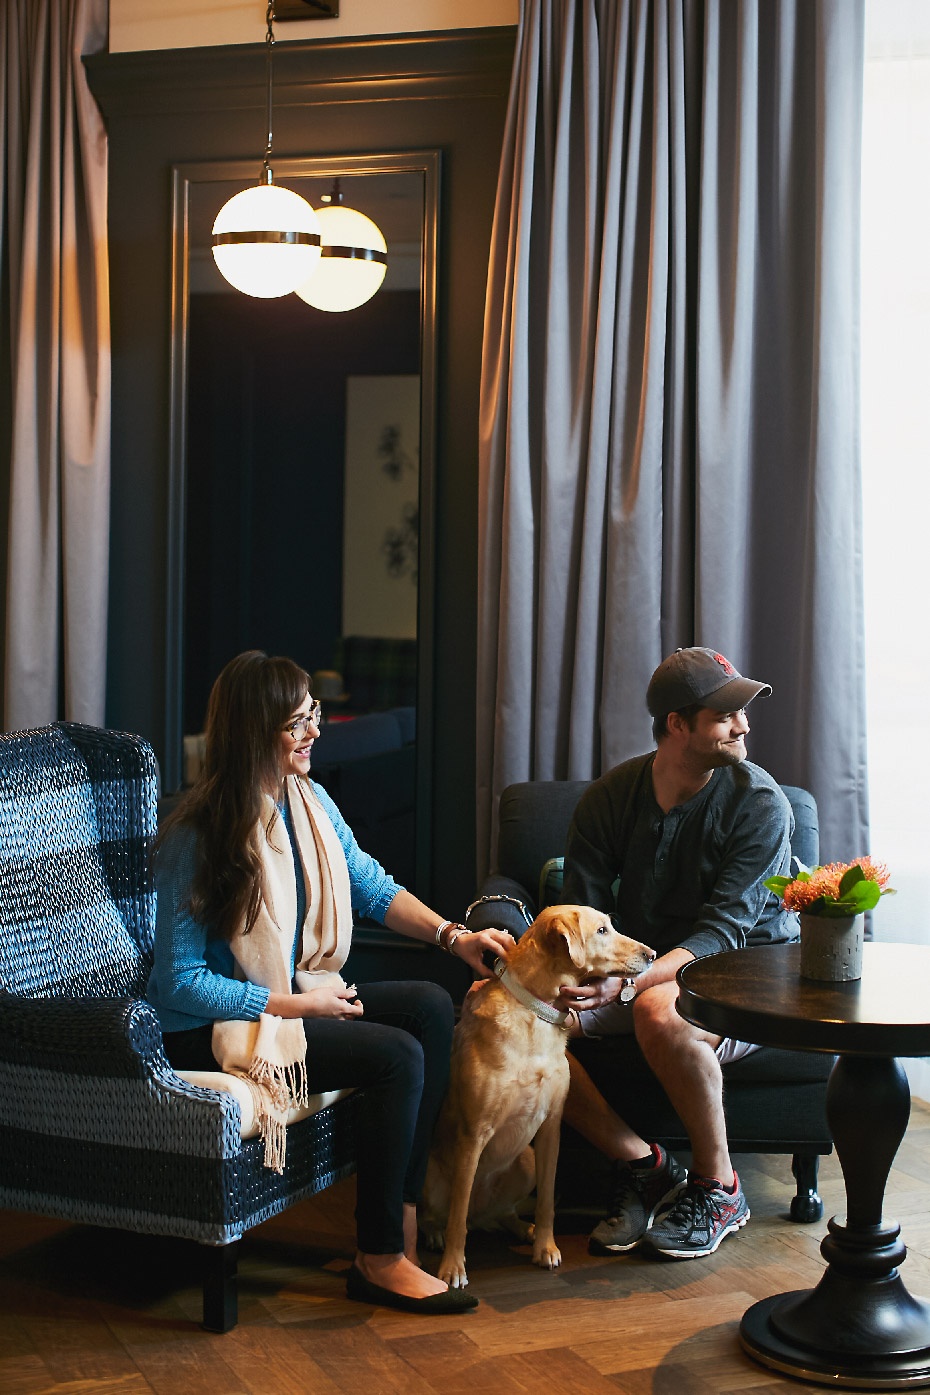 Stacey Van Berkel Photography I Hip young couple with their dog at the Cardinal Hotel I Kimpton Hotel I Dog friendly hotels I Winston-Salem, North Carolina